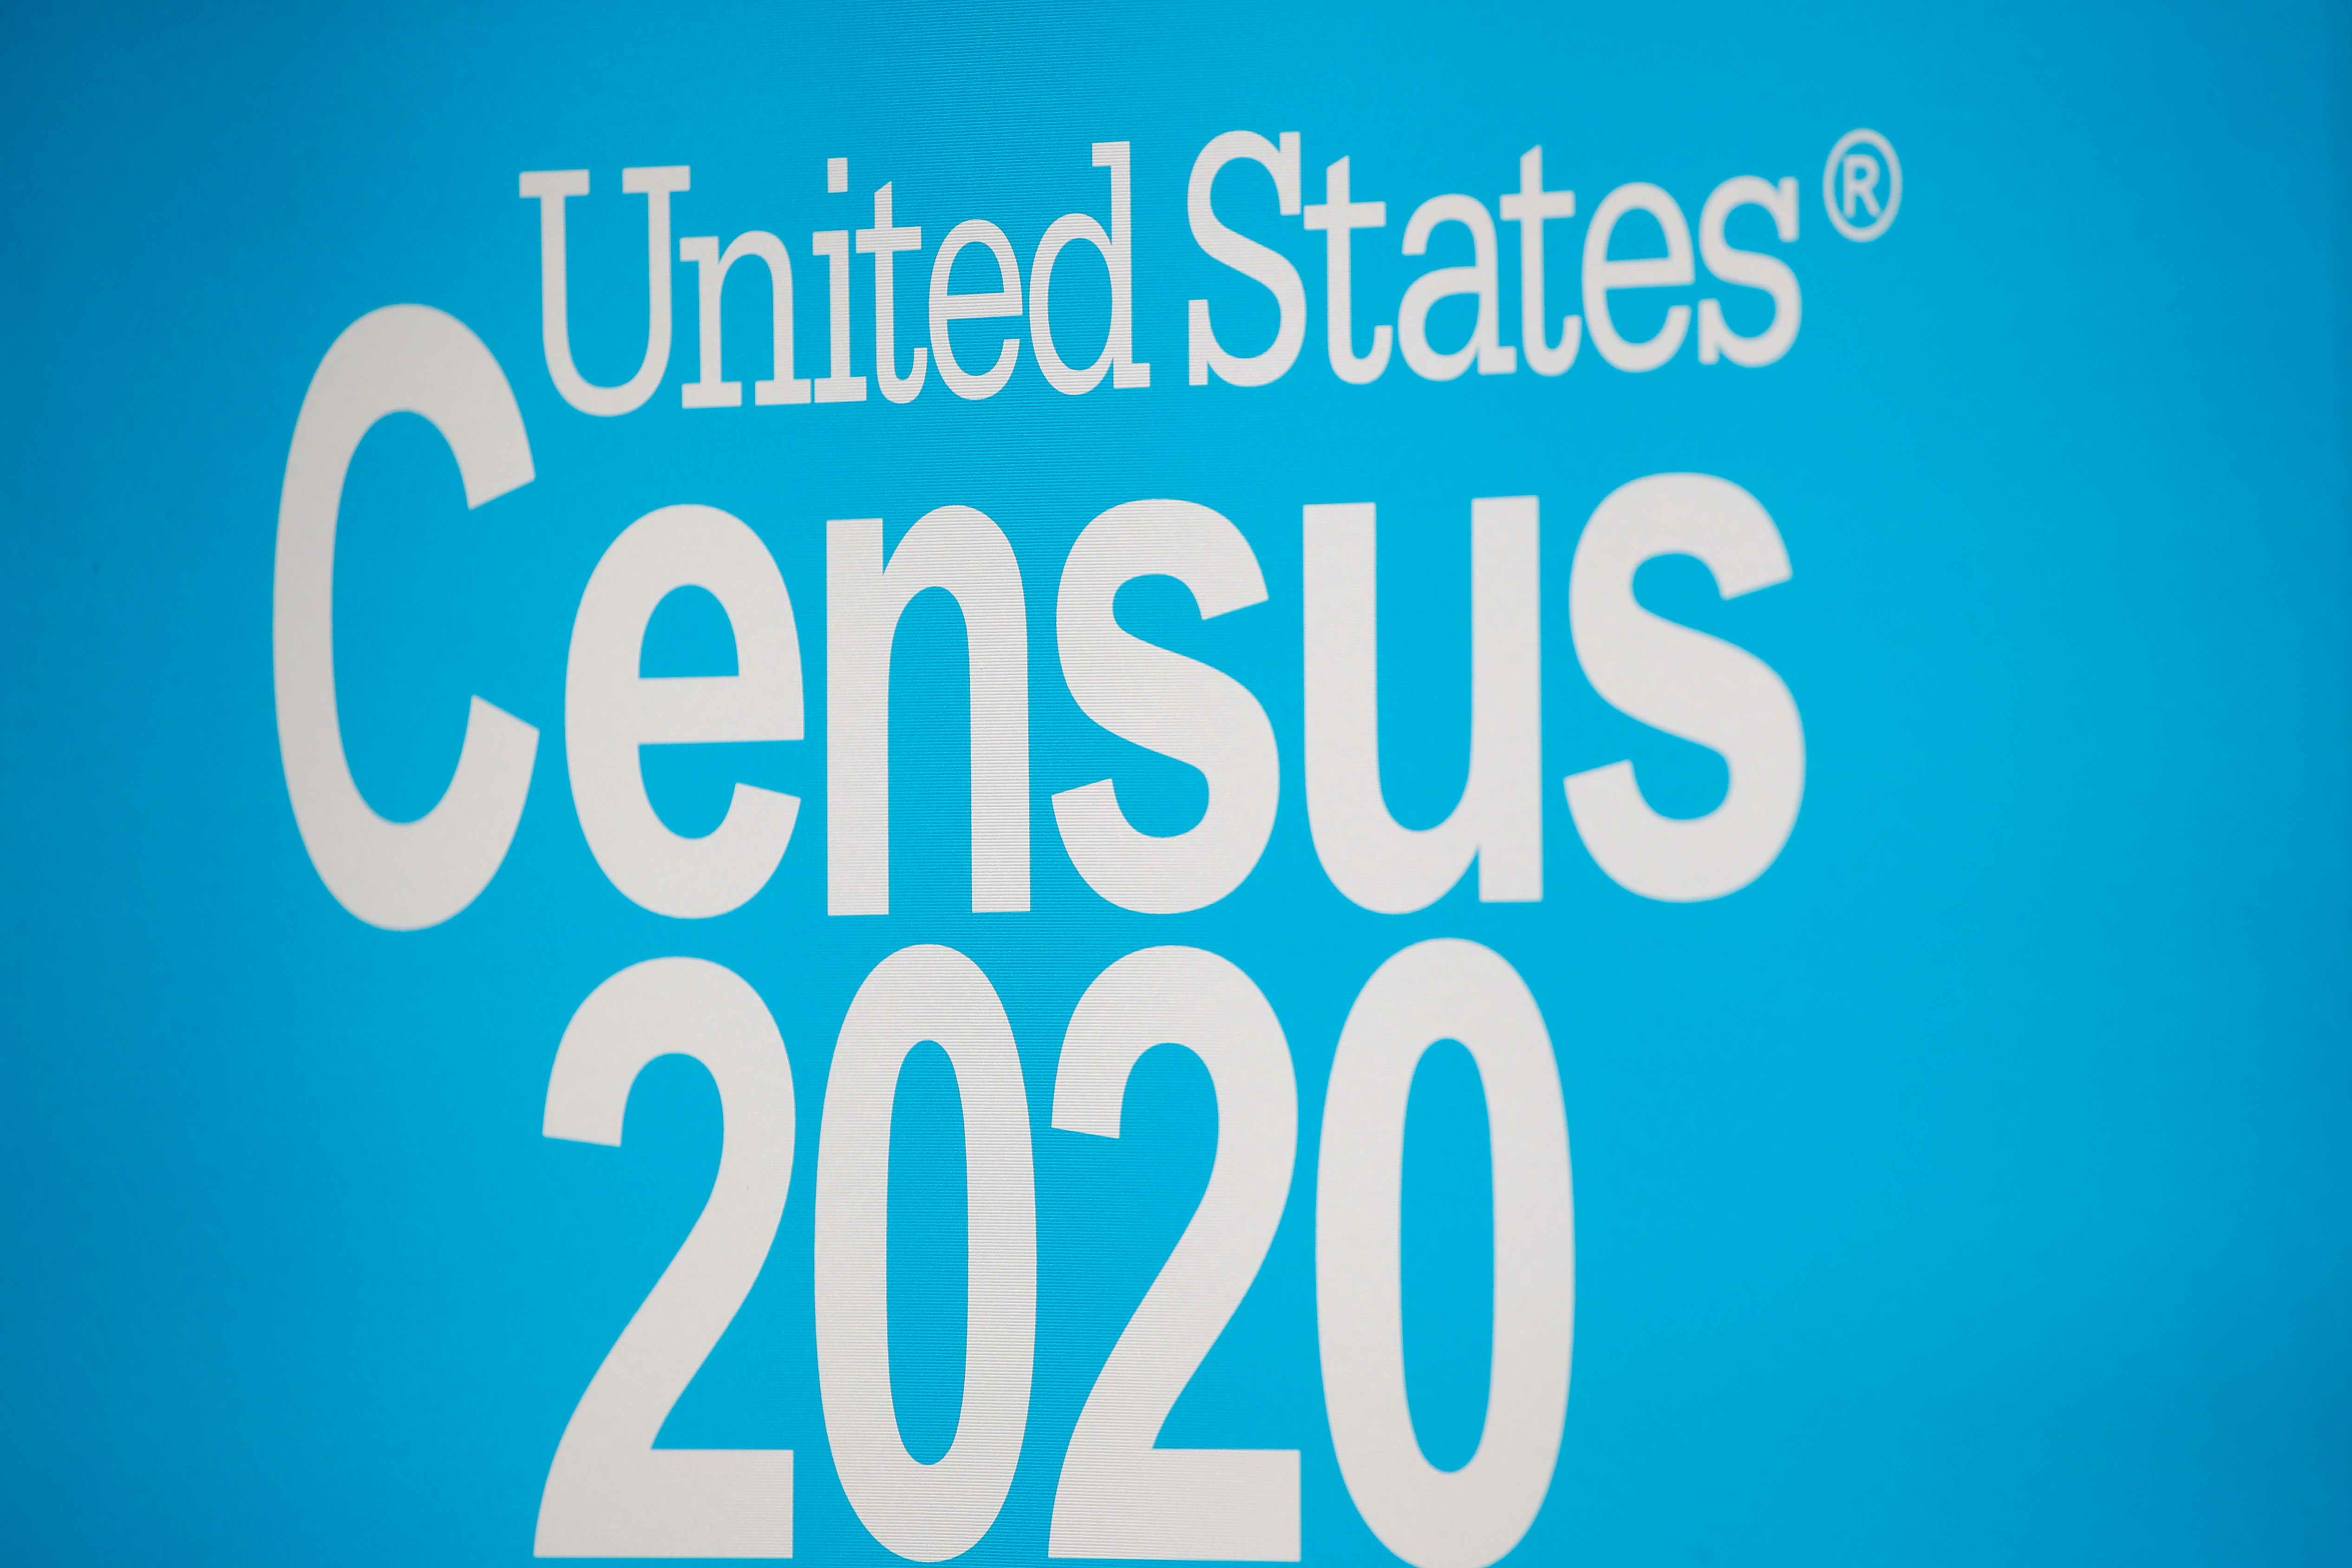 A sign is seen during a promotional event for the U.S. Census in Times Square in New York City, New York, U.S., September 23, 2020. REUTERS/Brendan McDermid/File Photo